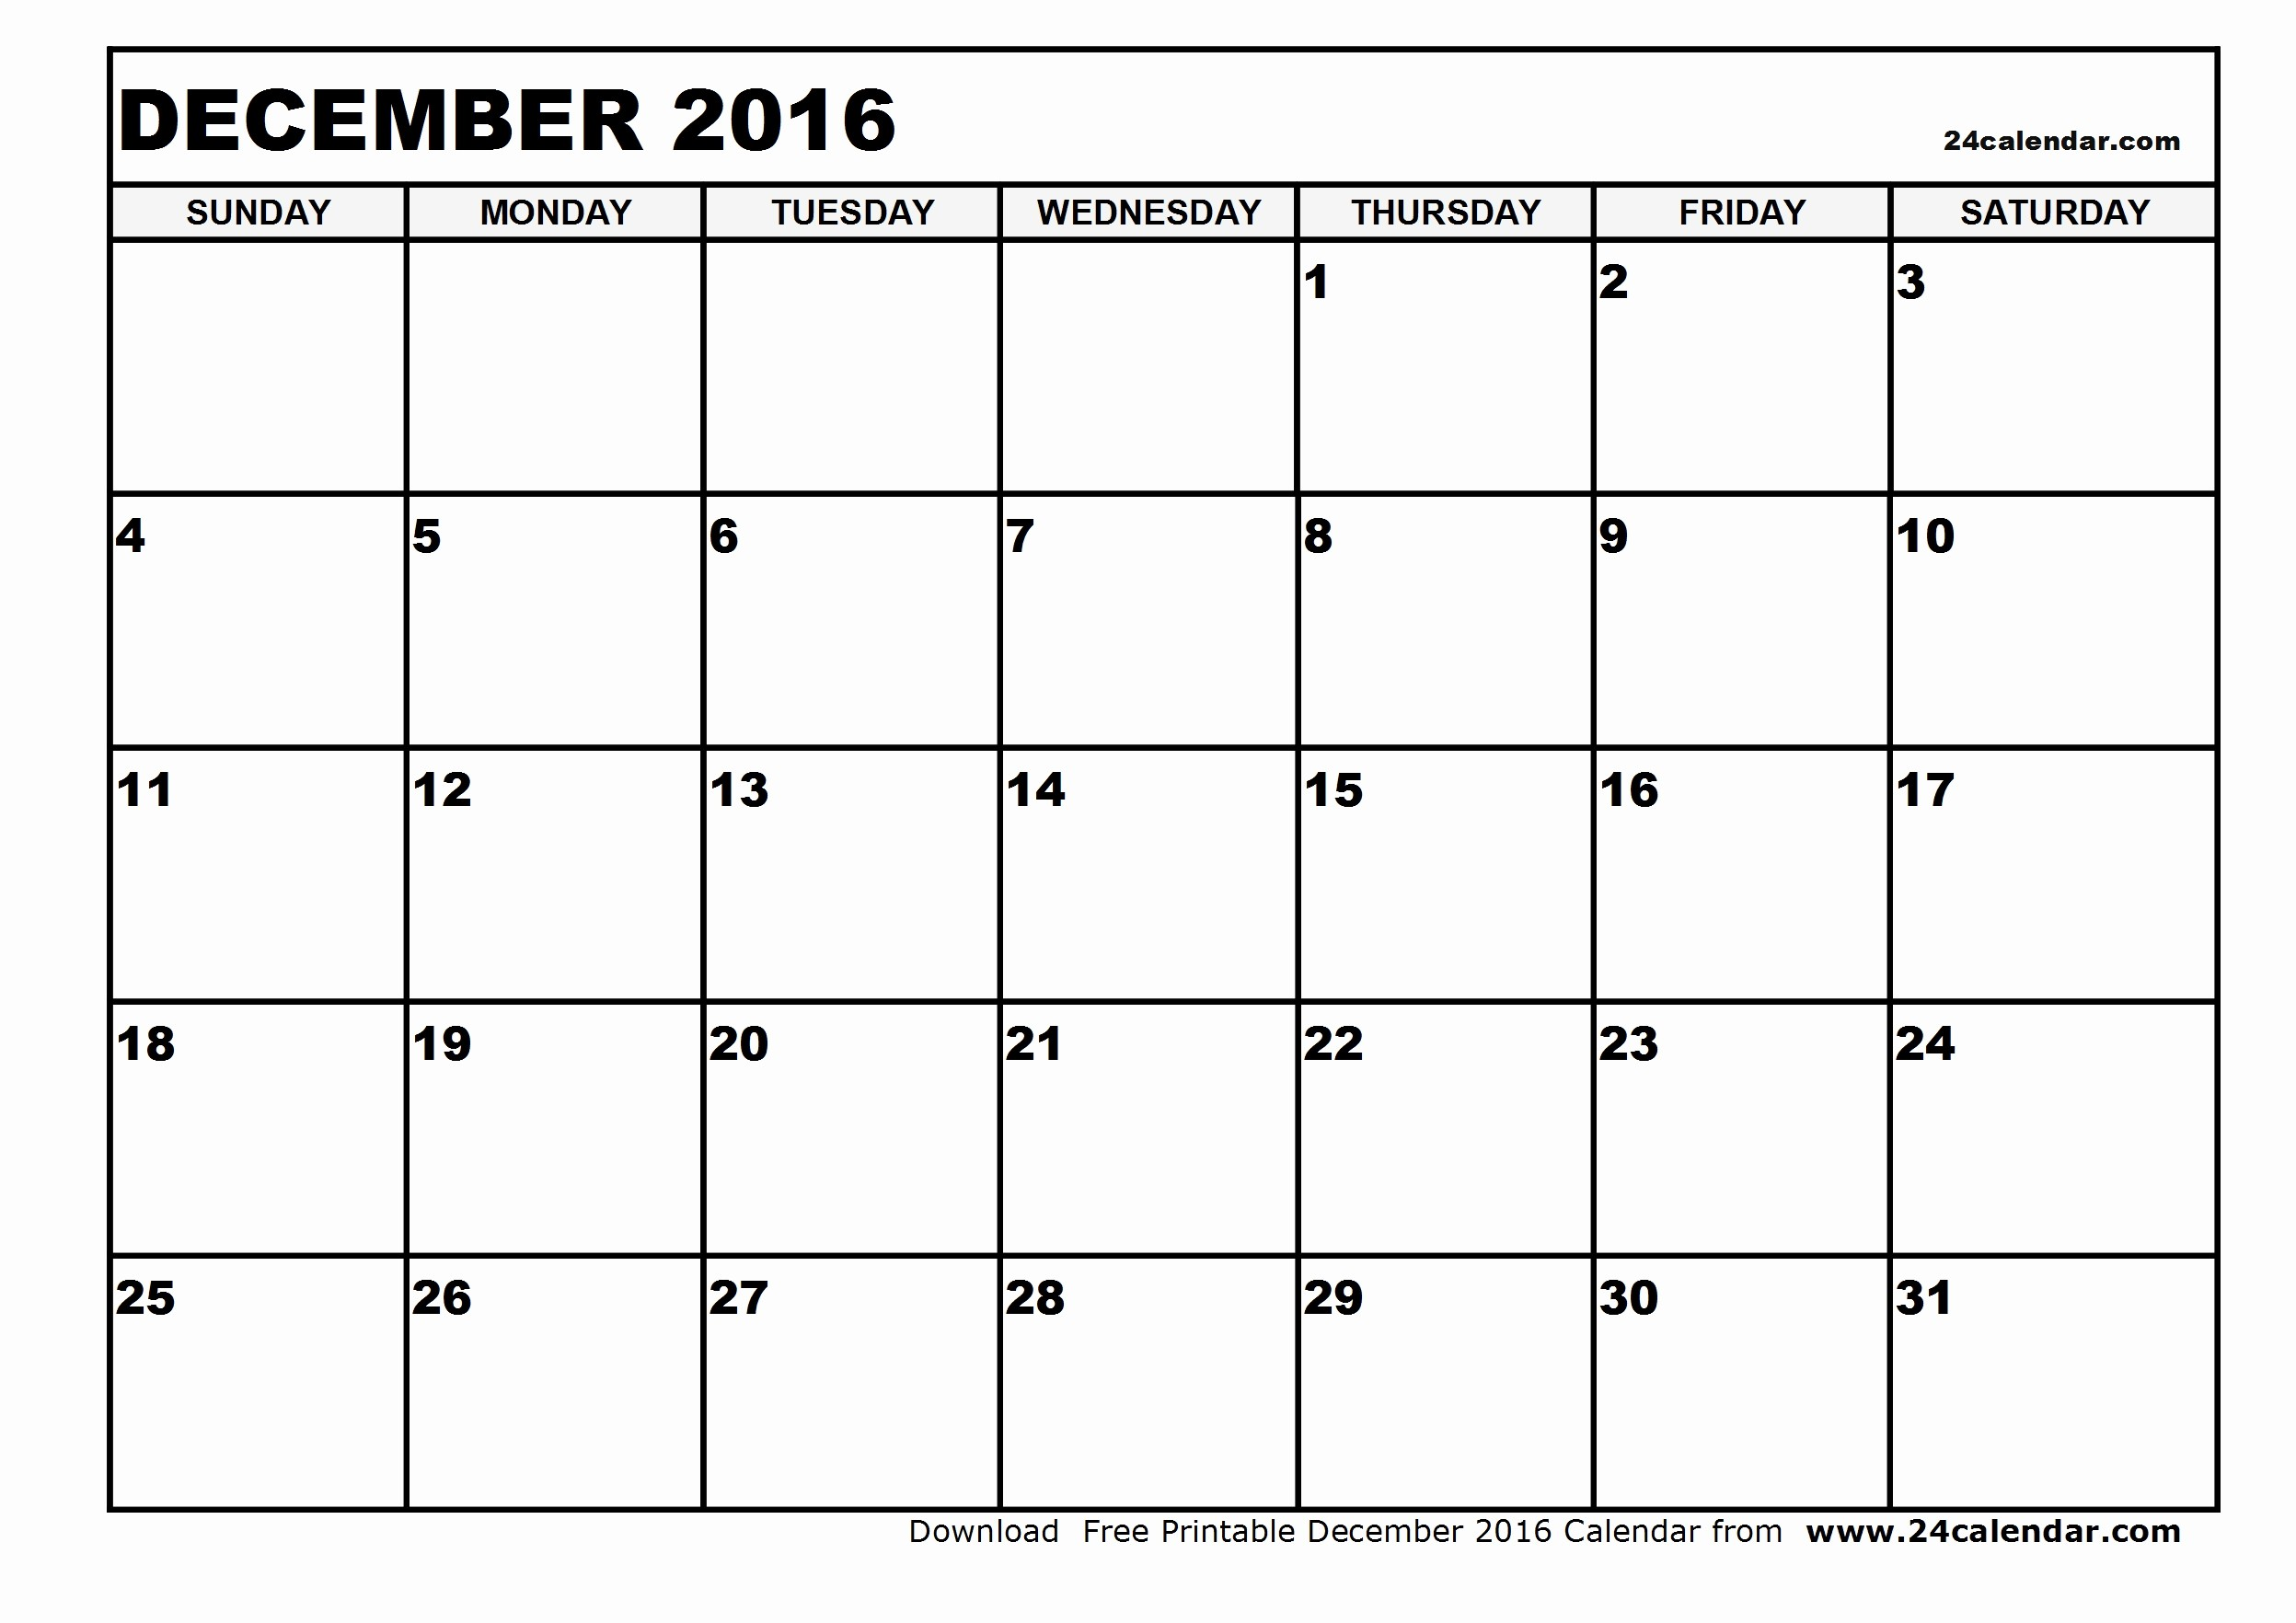 Blank December Calendar 2016 Printable Best Of Blank December 2016 Calendar In Printable format